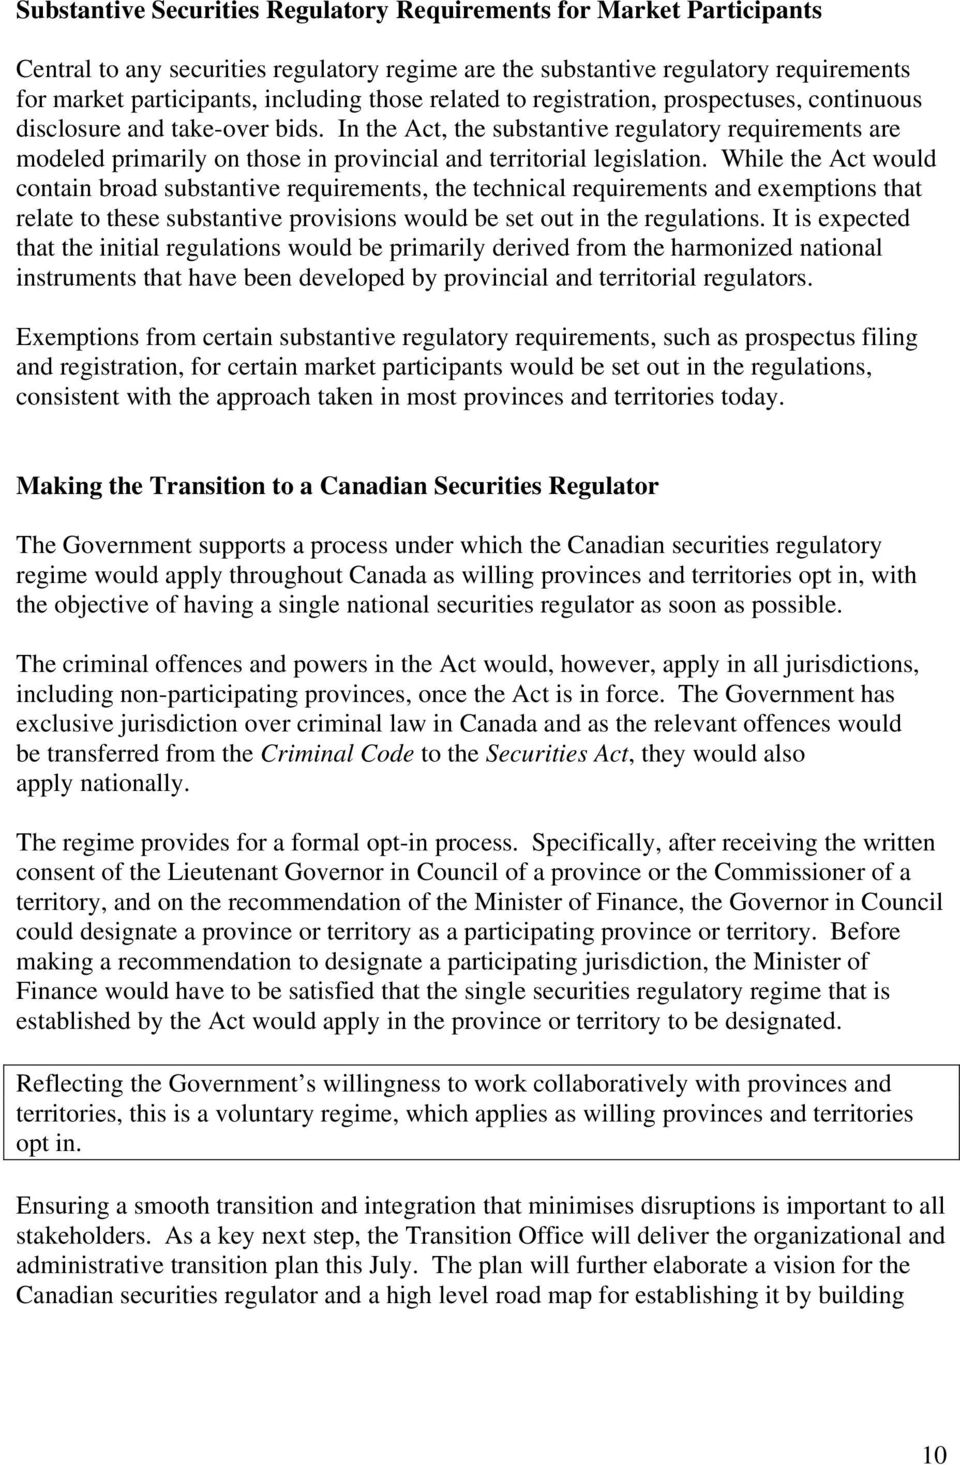 In the Act, the substantive regulatory requirements are modeled primarily on those in provincial and territorial legislation.